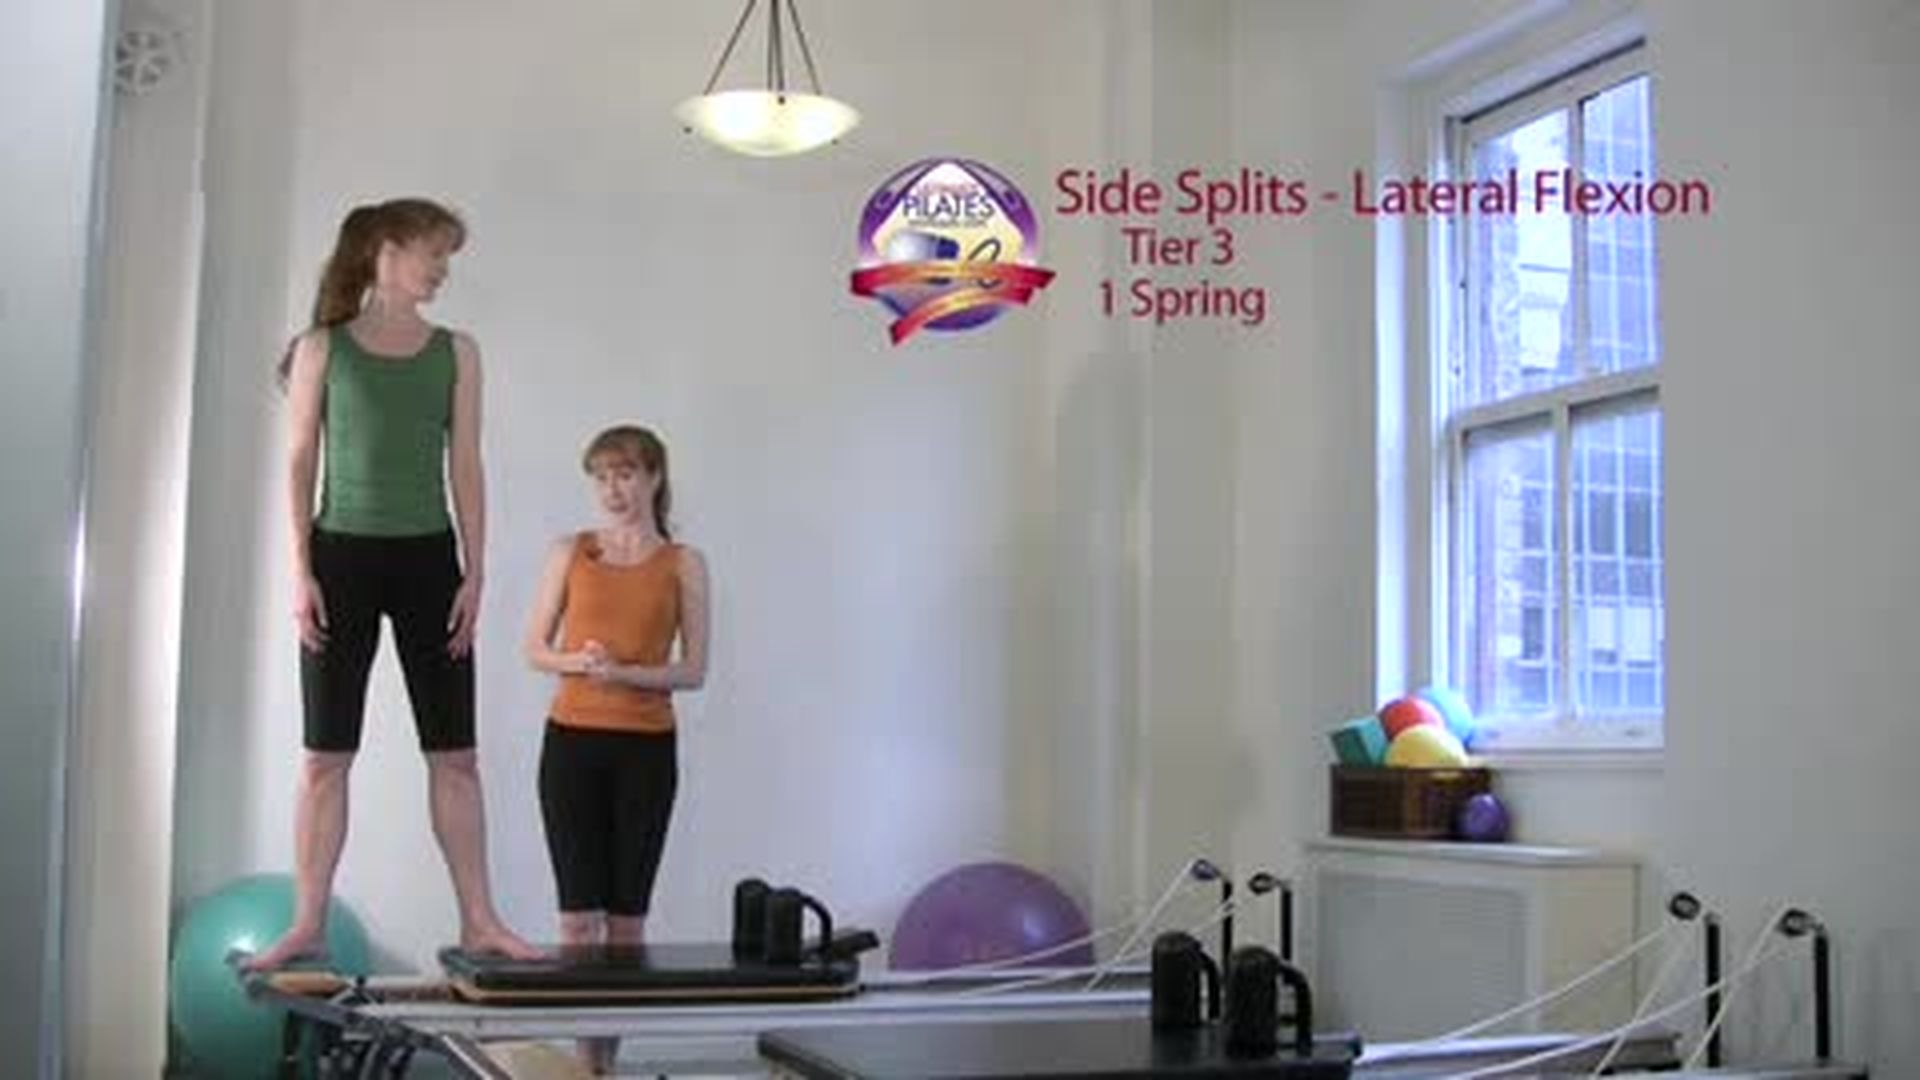 Side Splits Series 3 Lateral Flexion